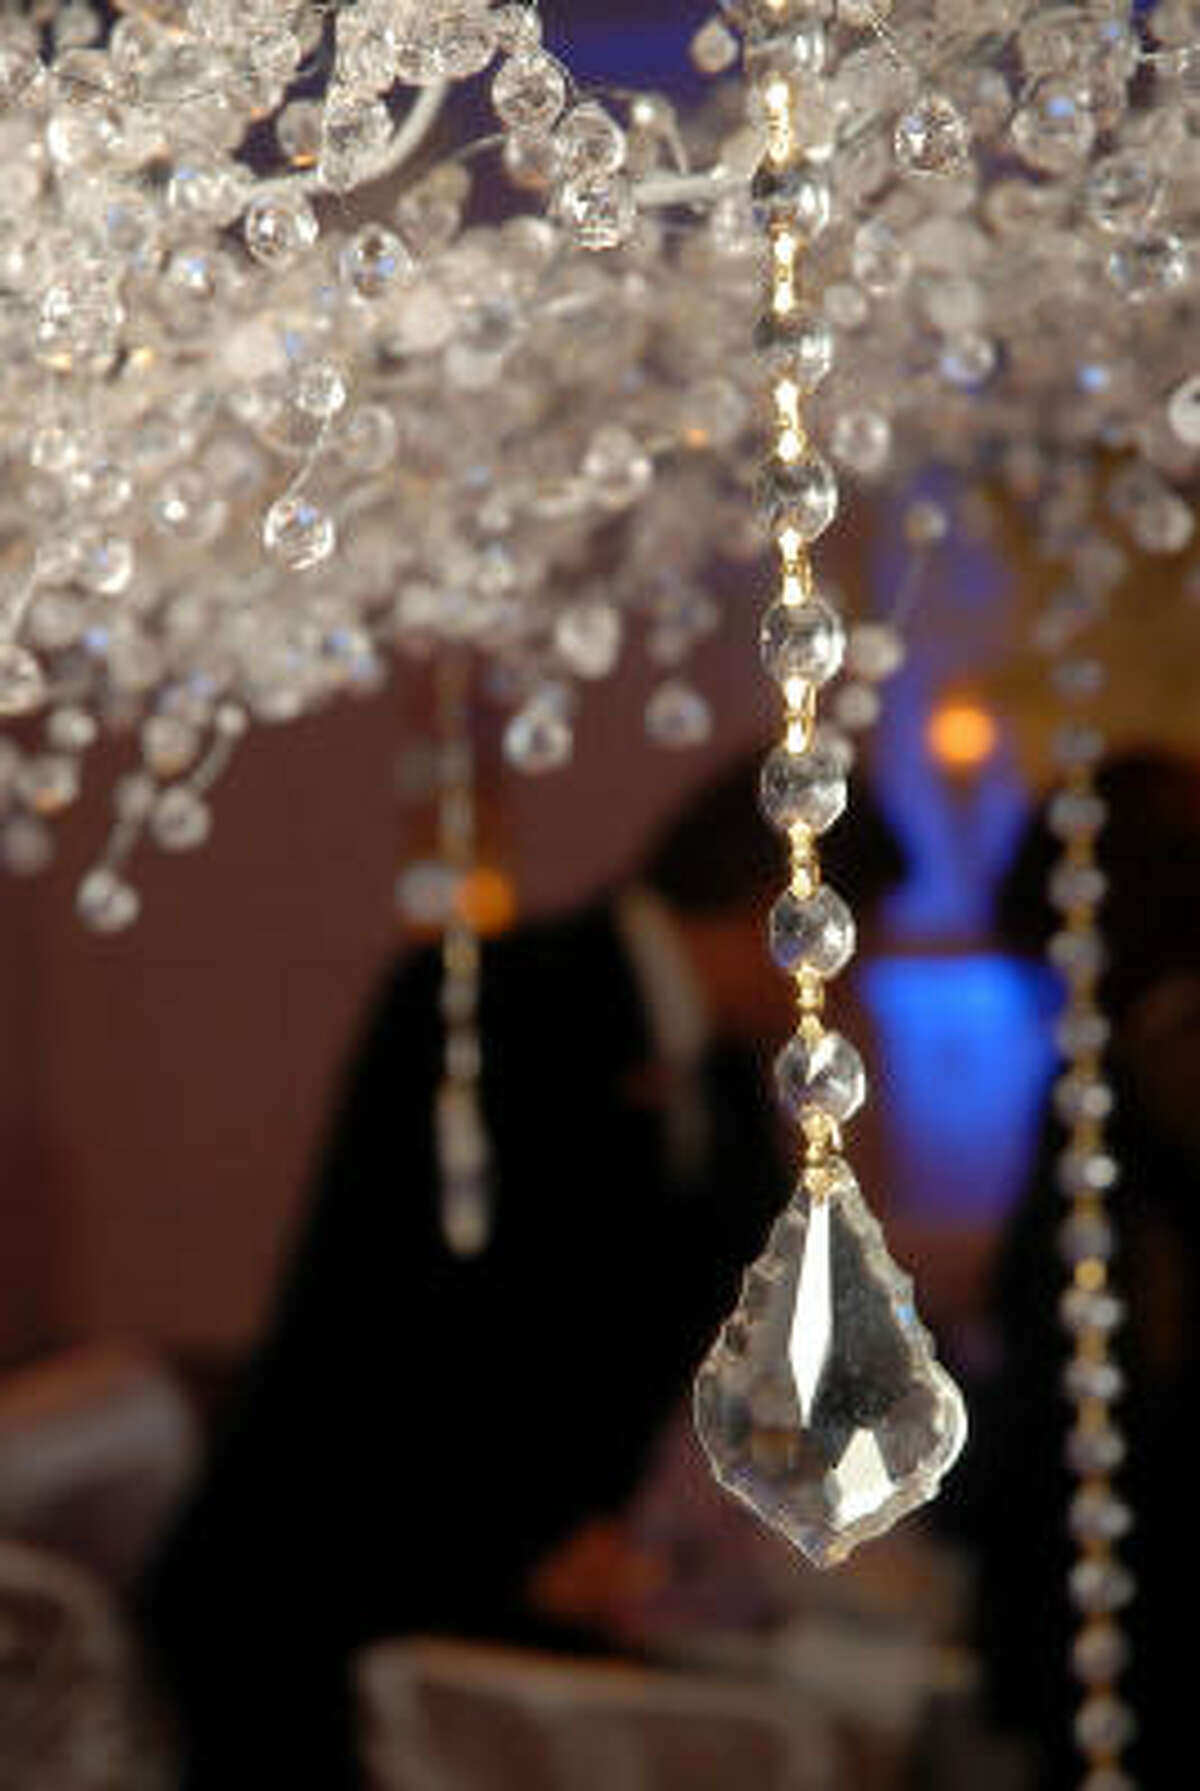 Some of the decor at the Crystal Ball at the River Oaks Country Club